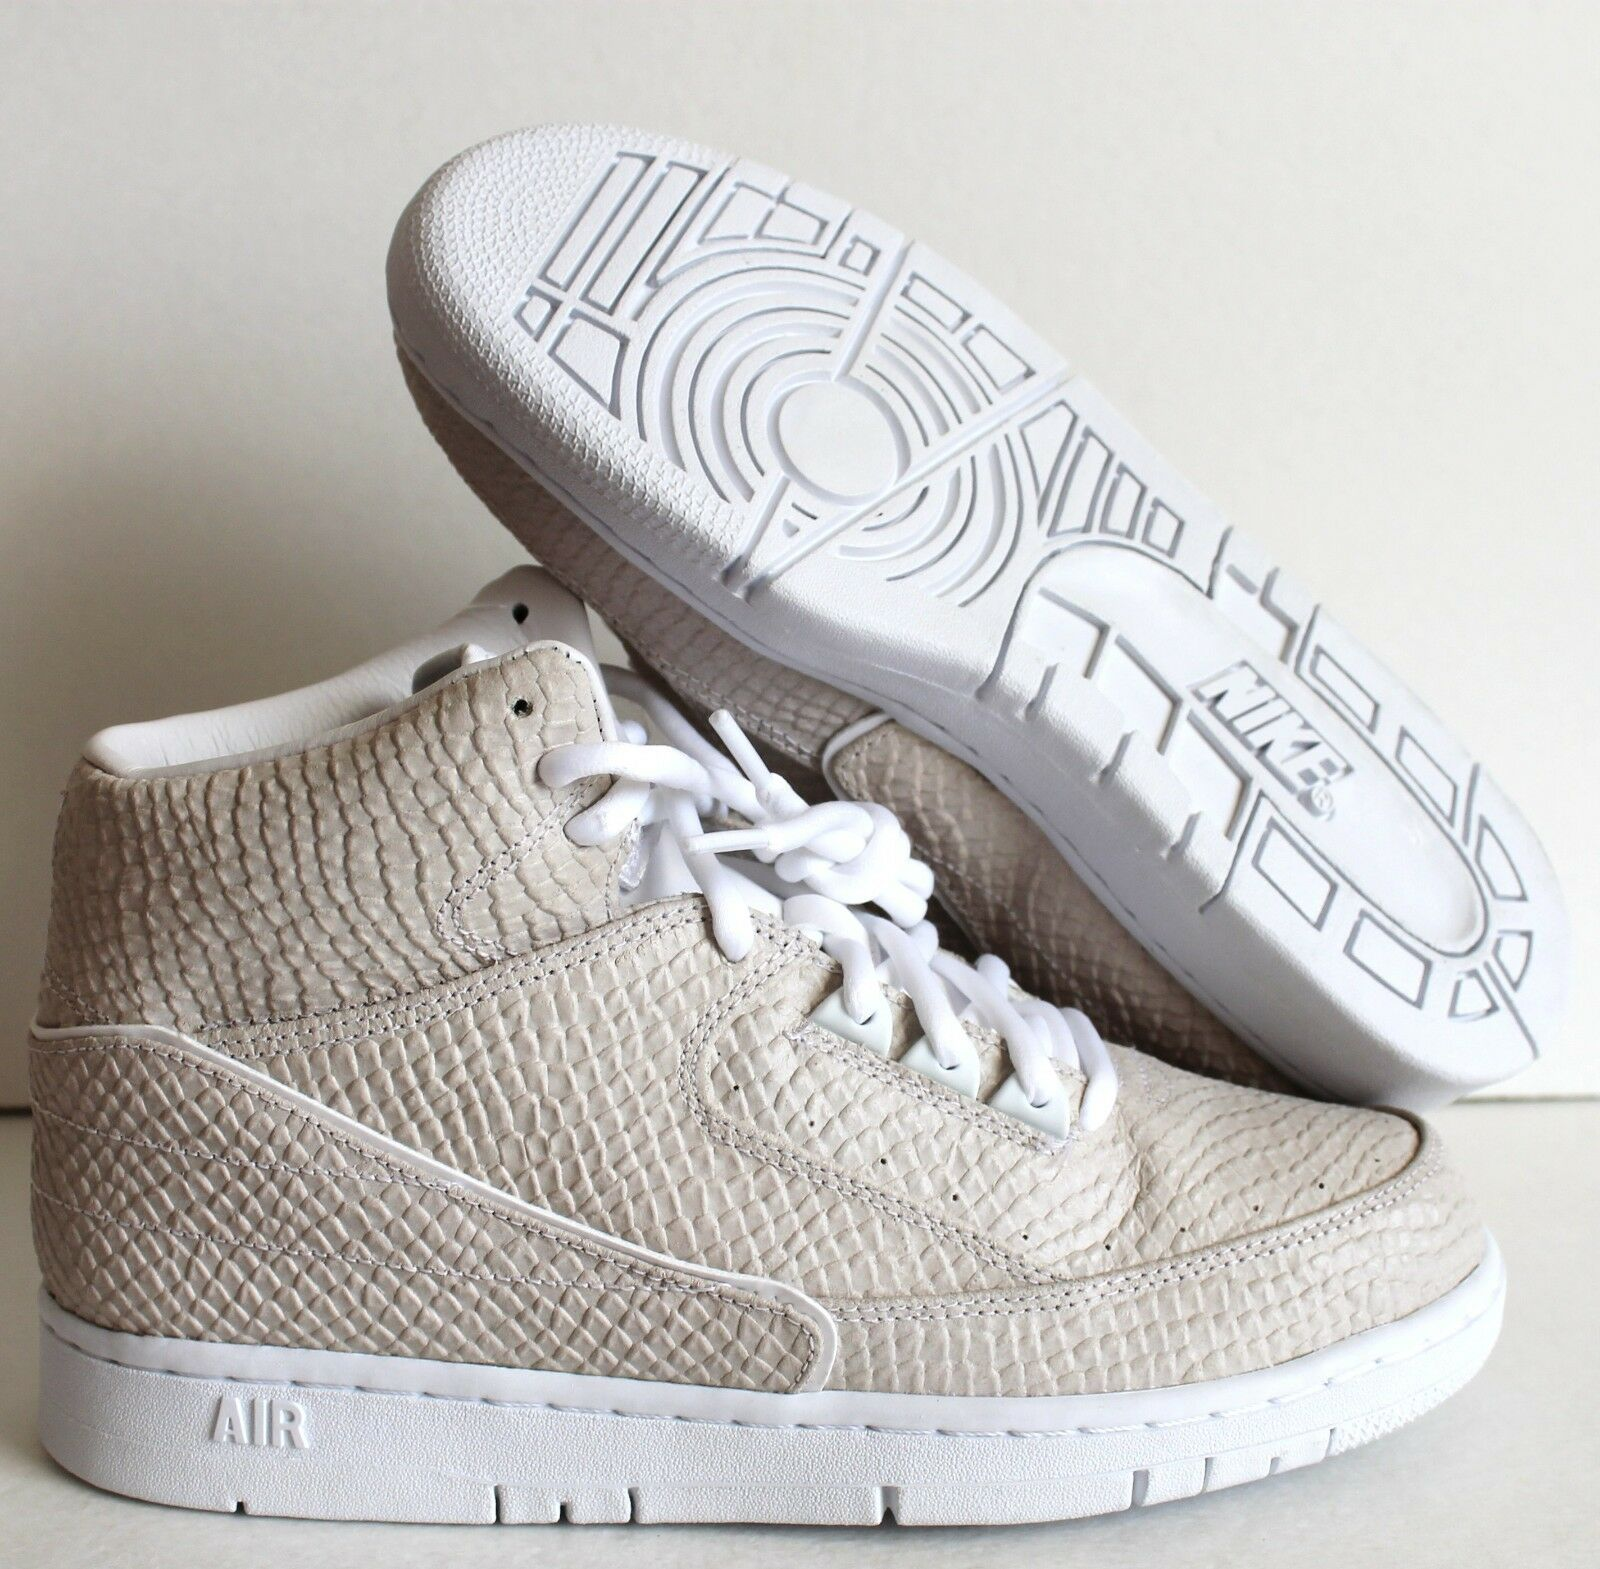 NIKE MEN AIR PYTHON SP SNAKESKIN WHITE SZ 8 [658394-100]